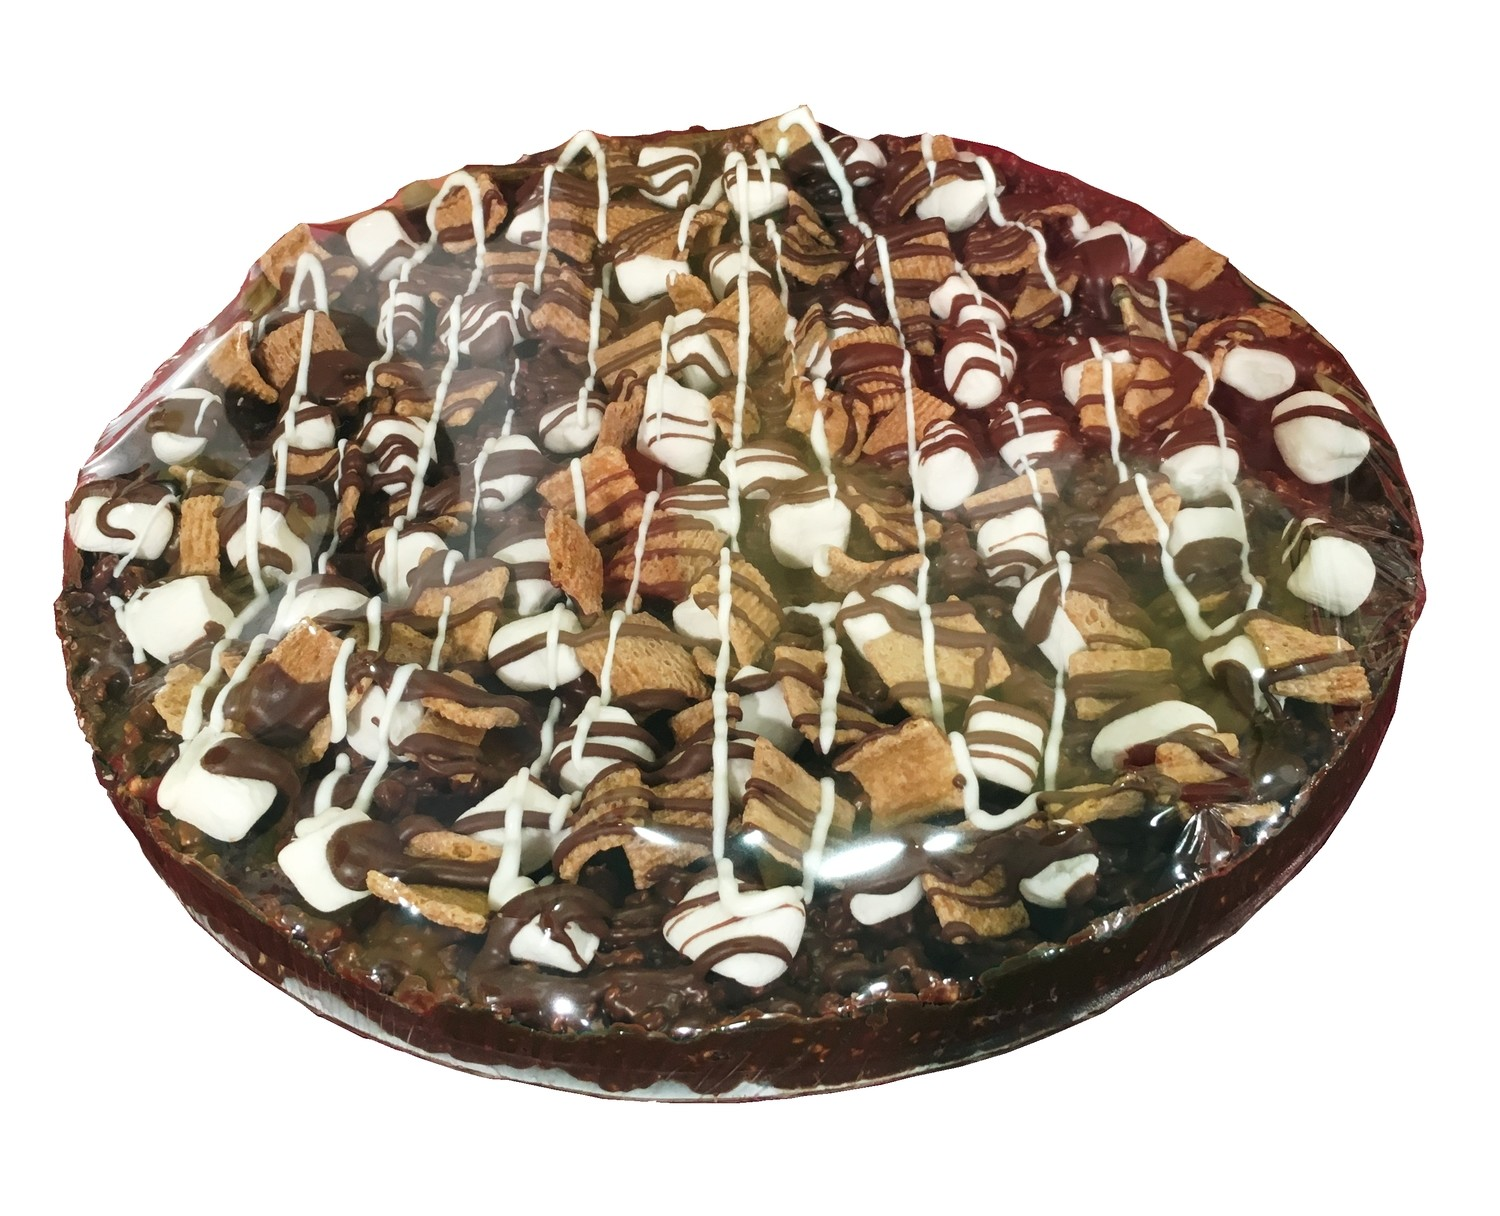 Gourmet S'mores Chocolate Pizza with Pizazz™ 10